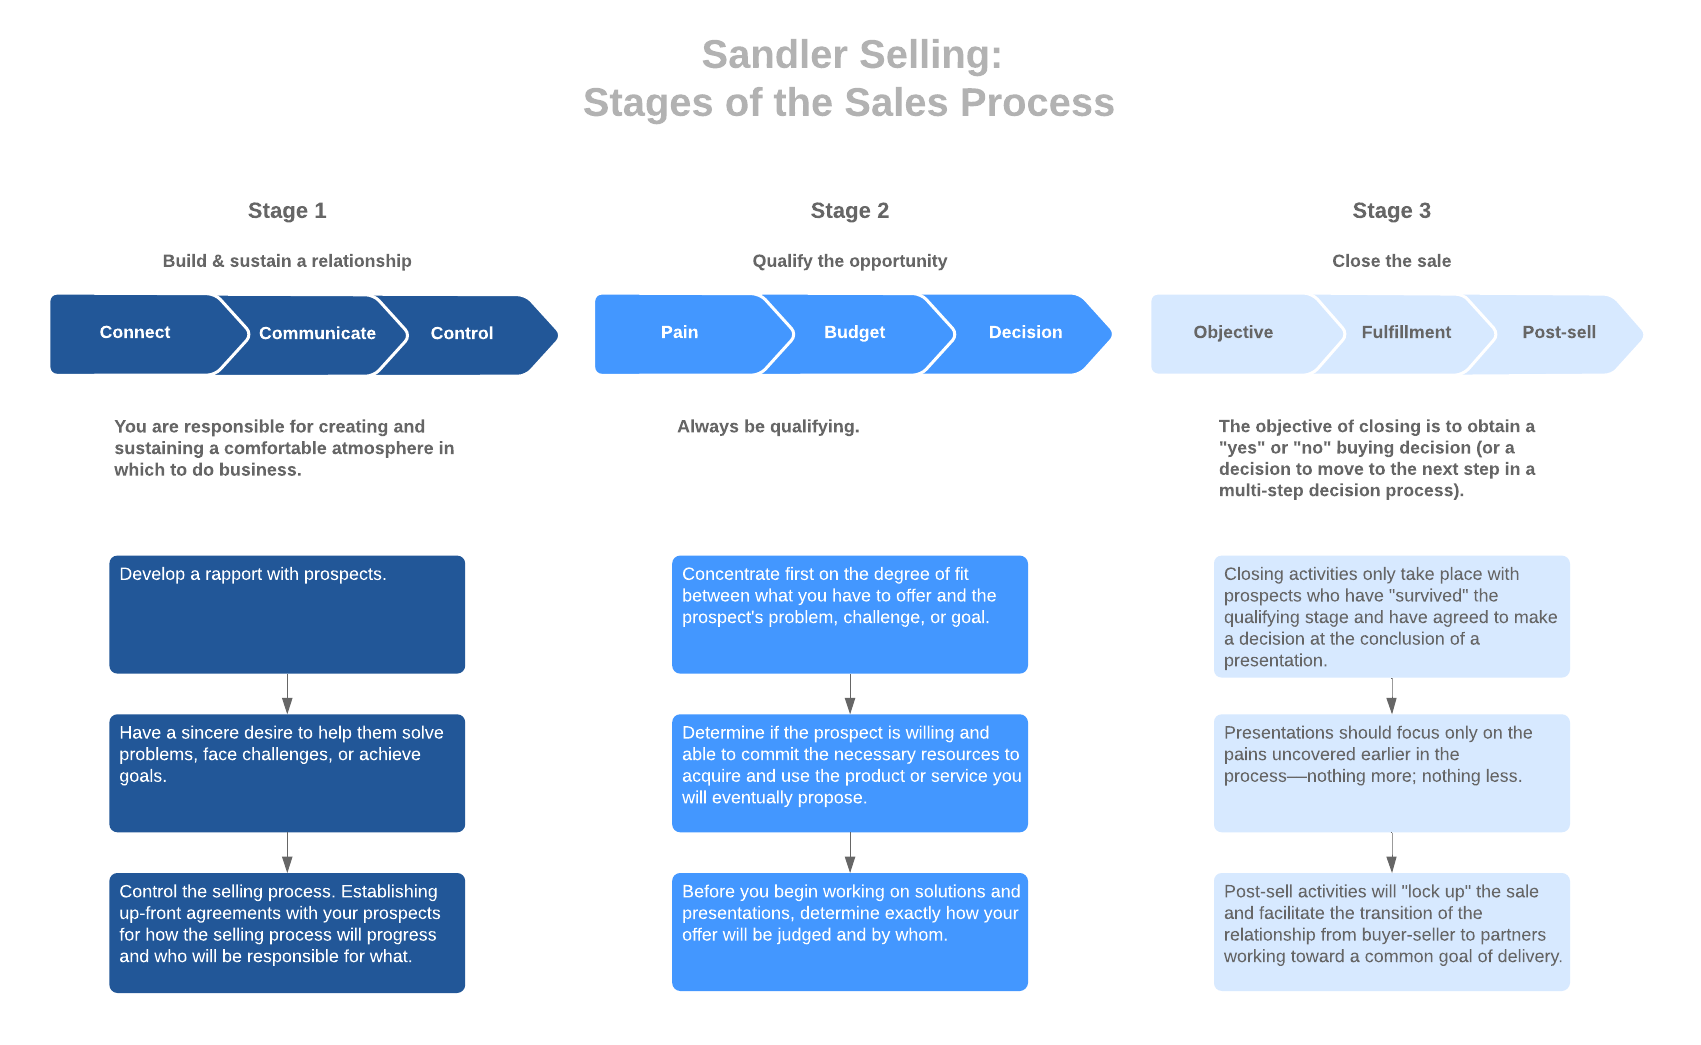 stages of the sales process in Sandler sales